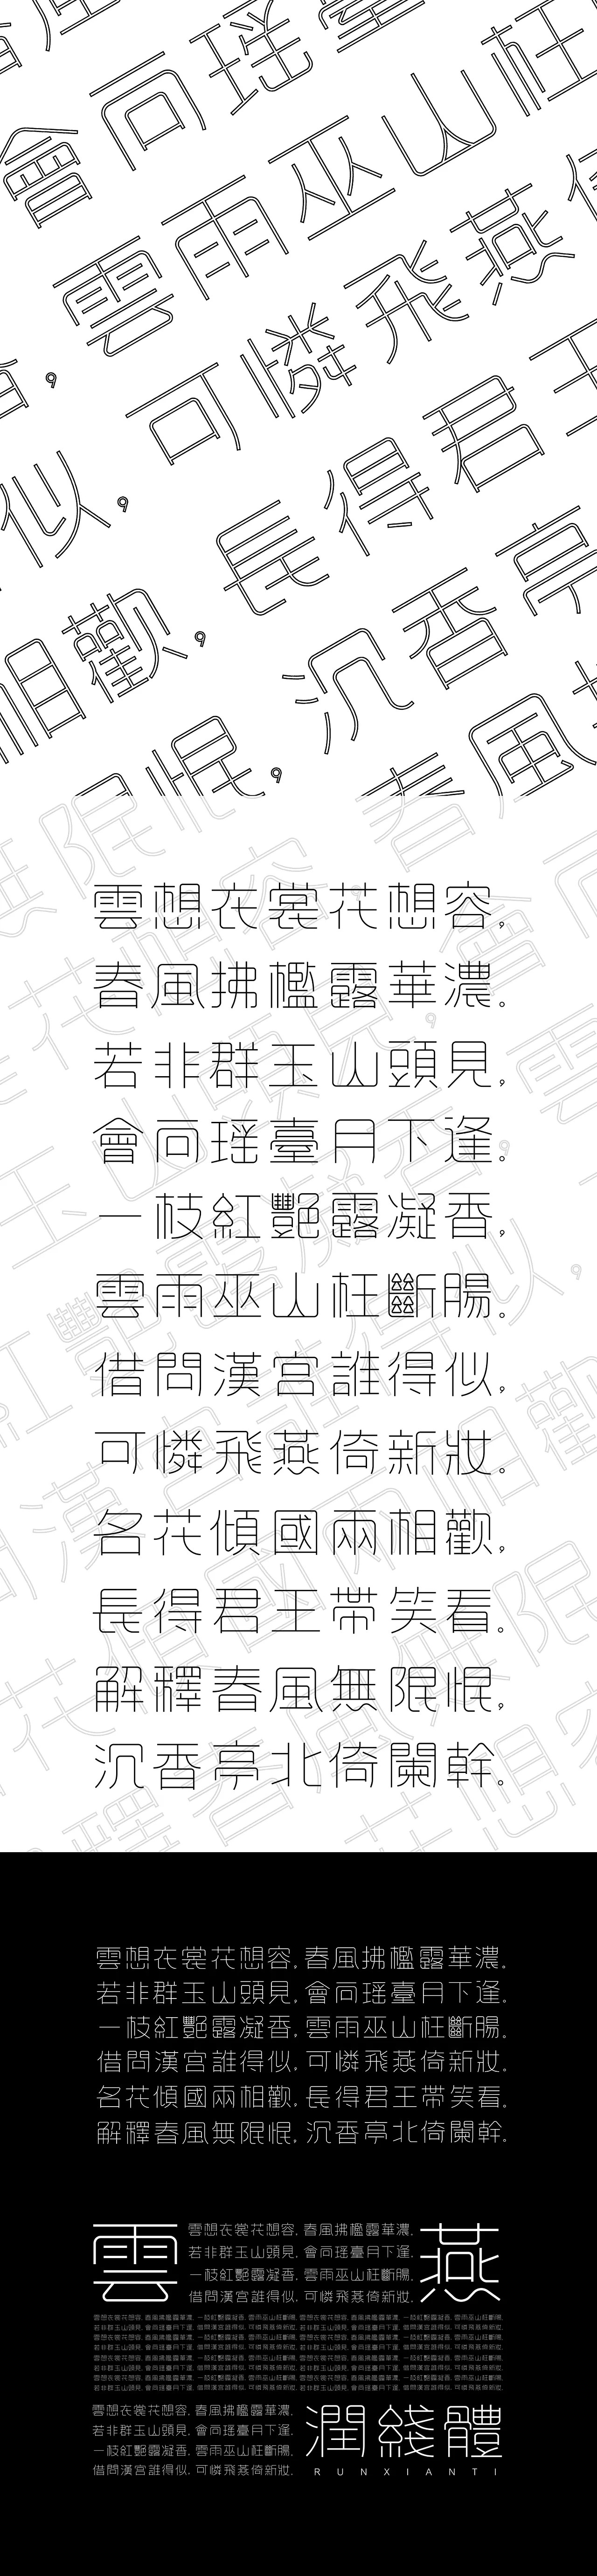 chinesefontdesign.com 2018 02 27 10 40 18 176028 Design and application of Chinese trend font